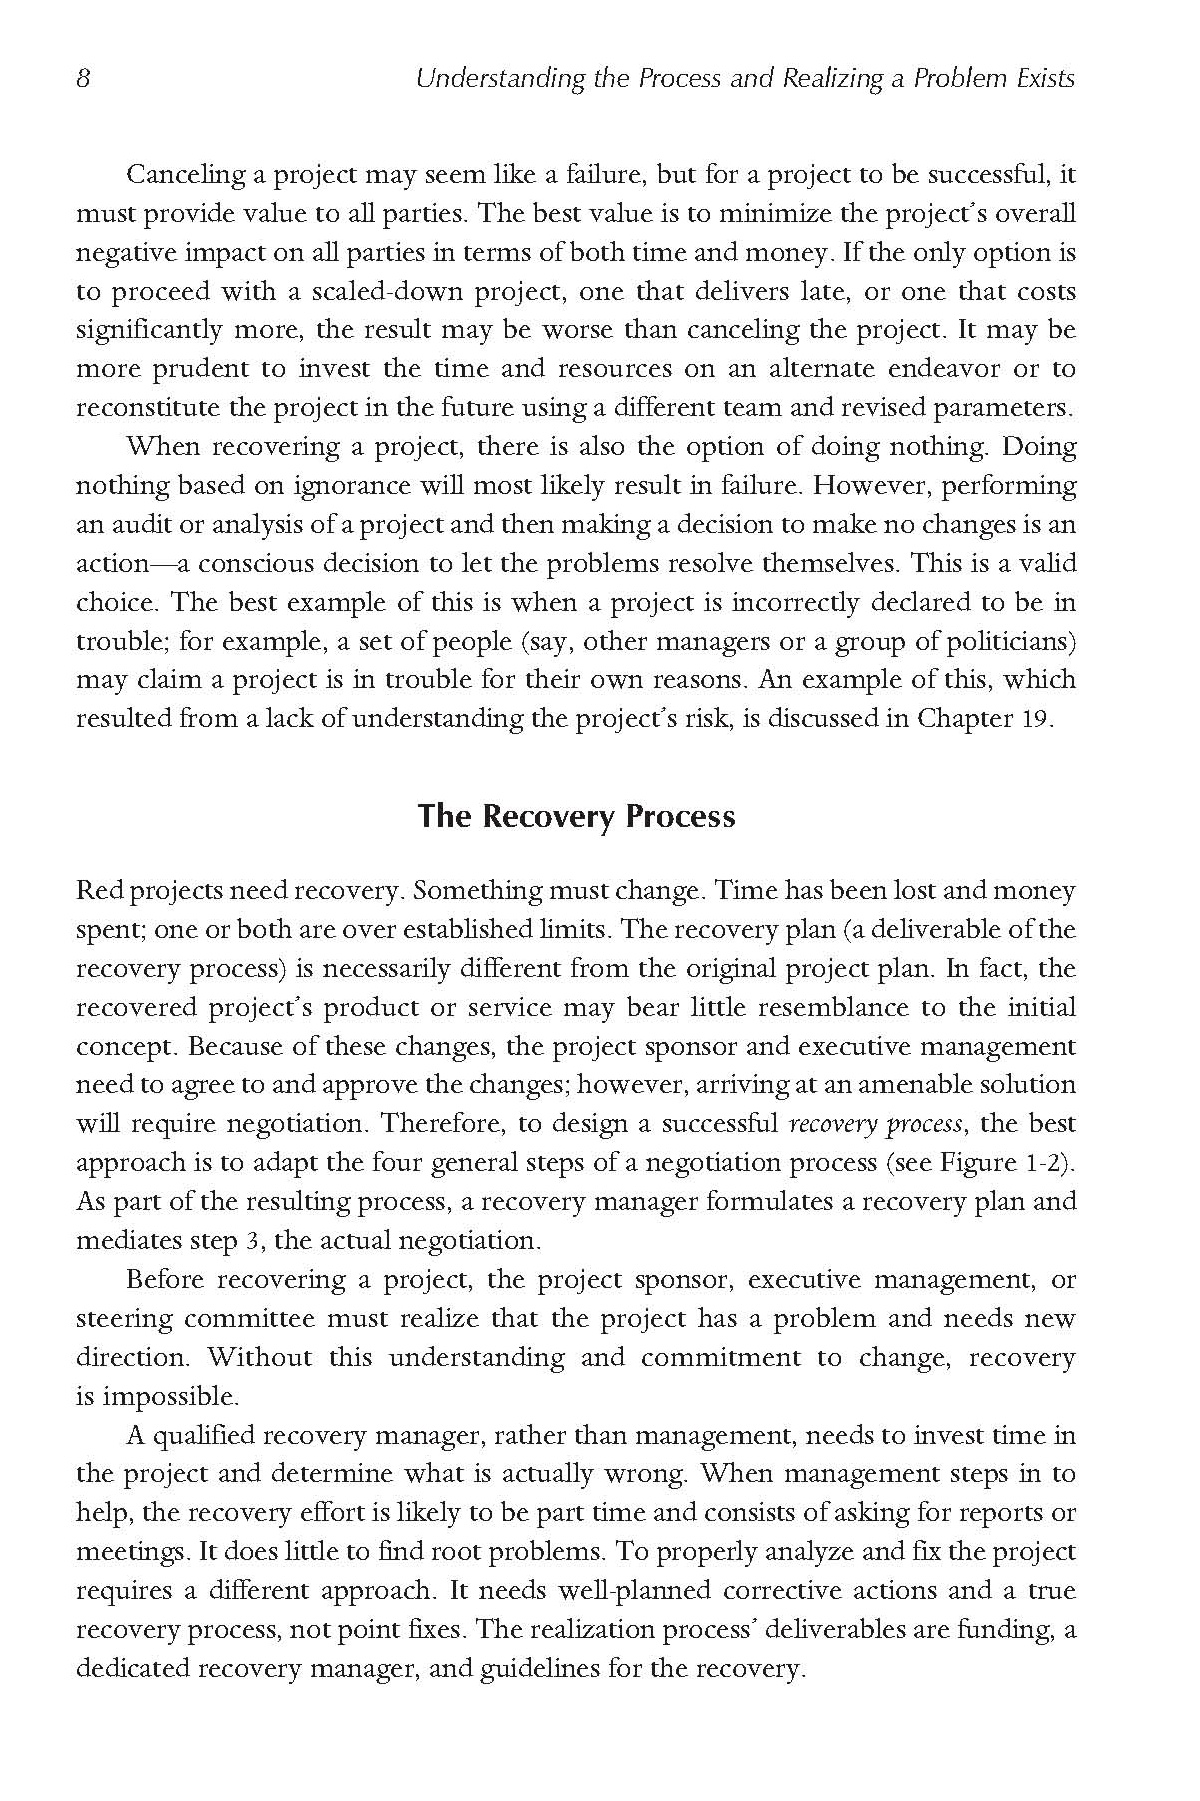 Rescue the Problem Project page 8